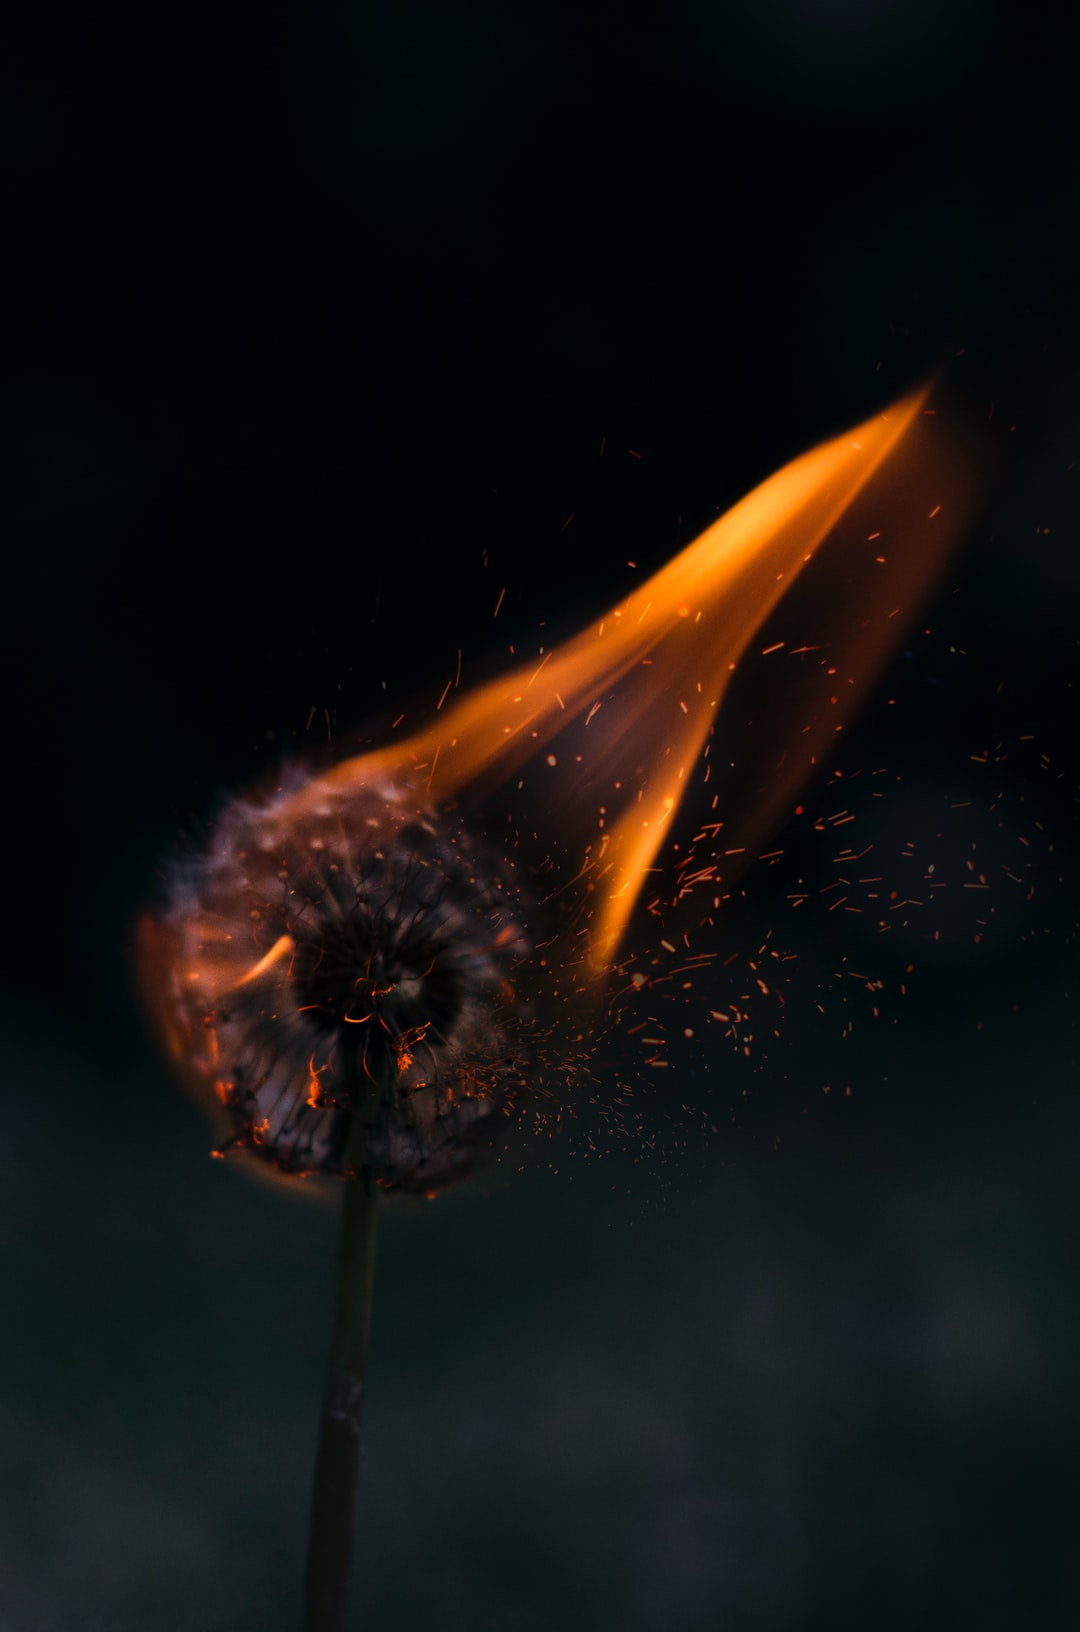 Dark Fire Pictures Download Free Images On Unsplash